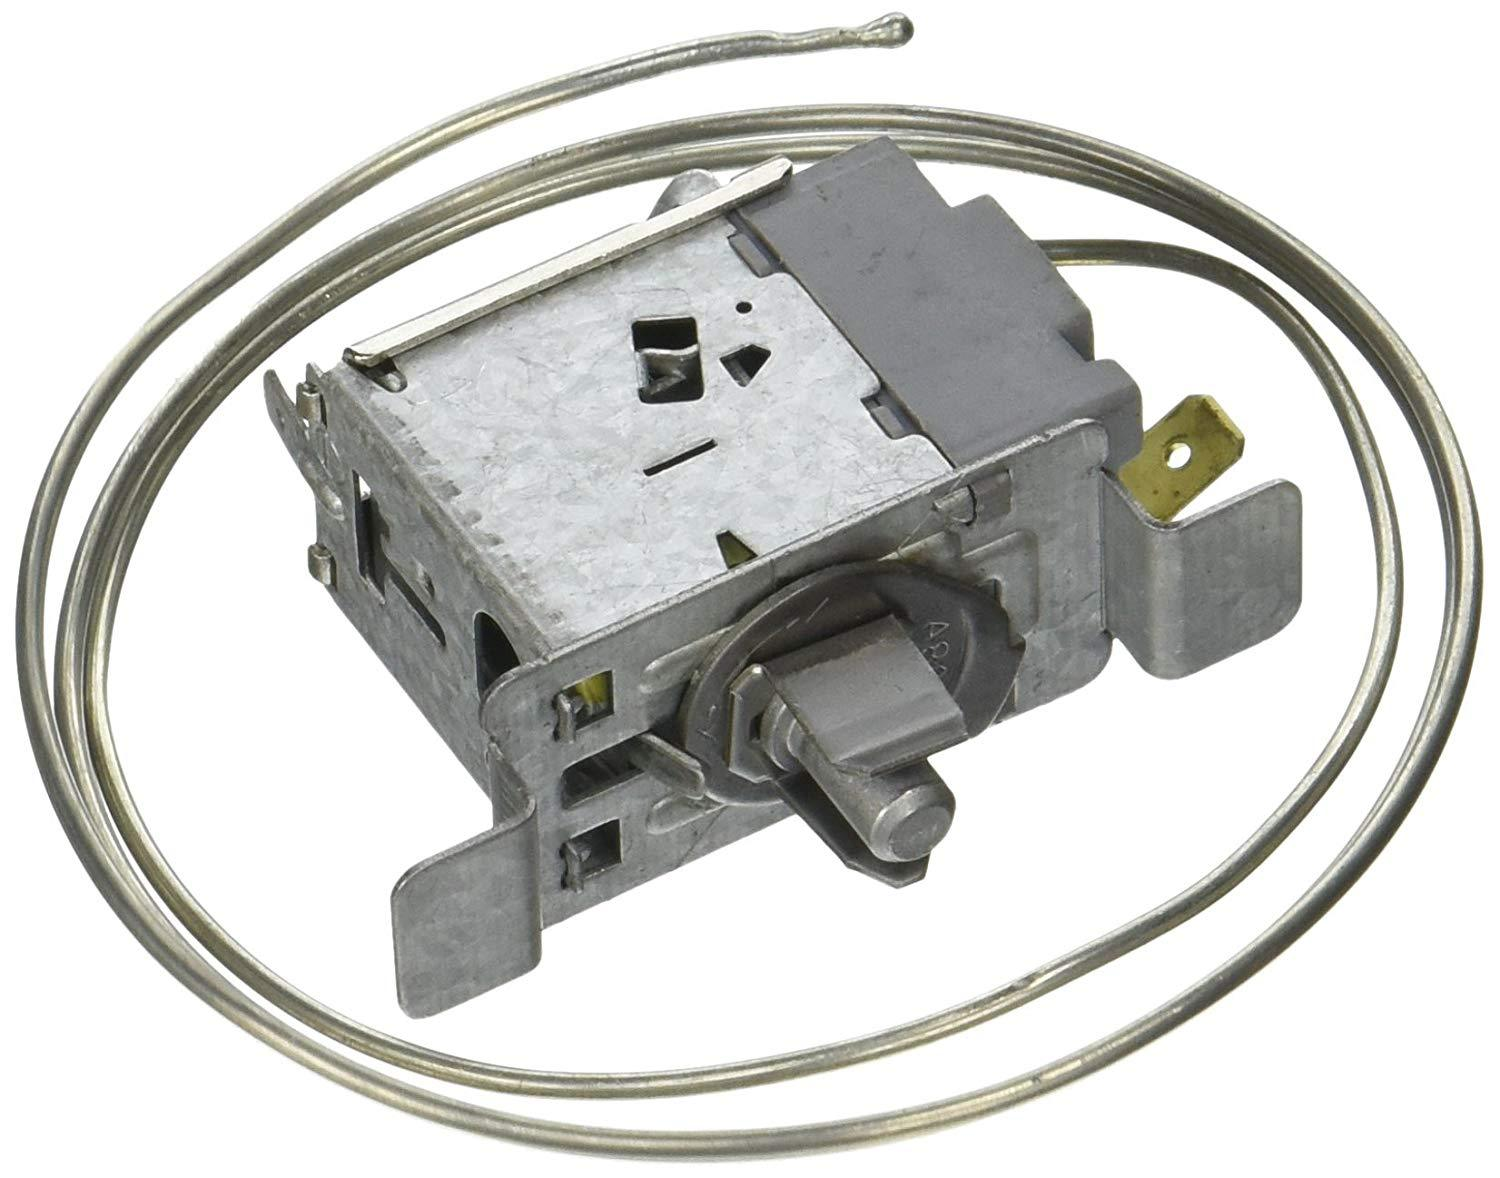 Kenmore / Sears 25363712304 Cold Control Thermostat Replacement